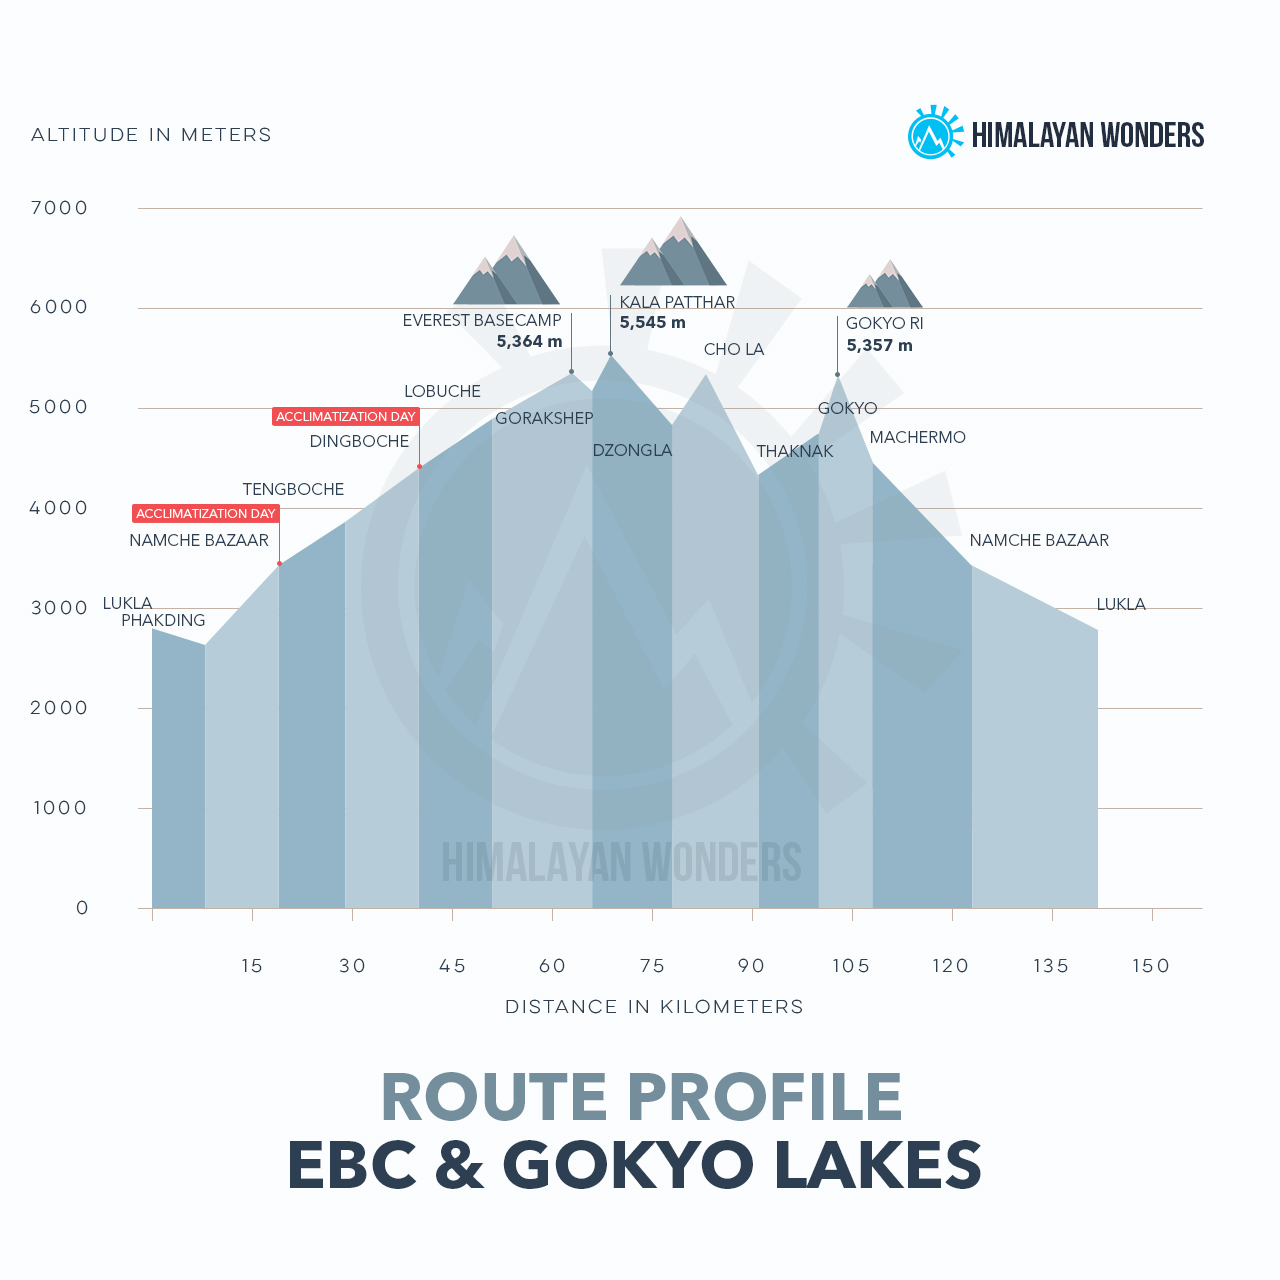 EBC & Gokyo Lake Route Profile